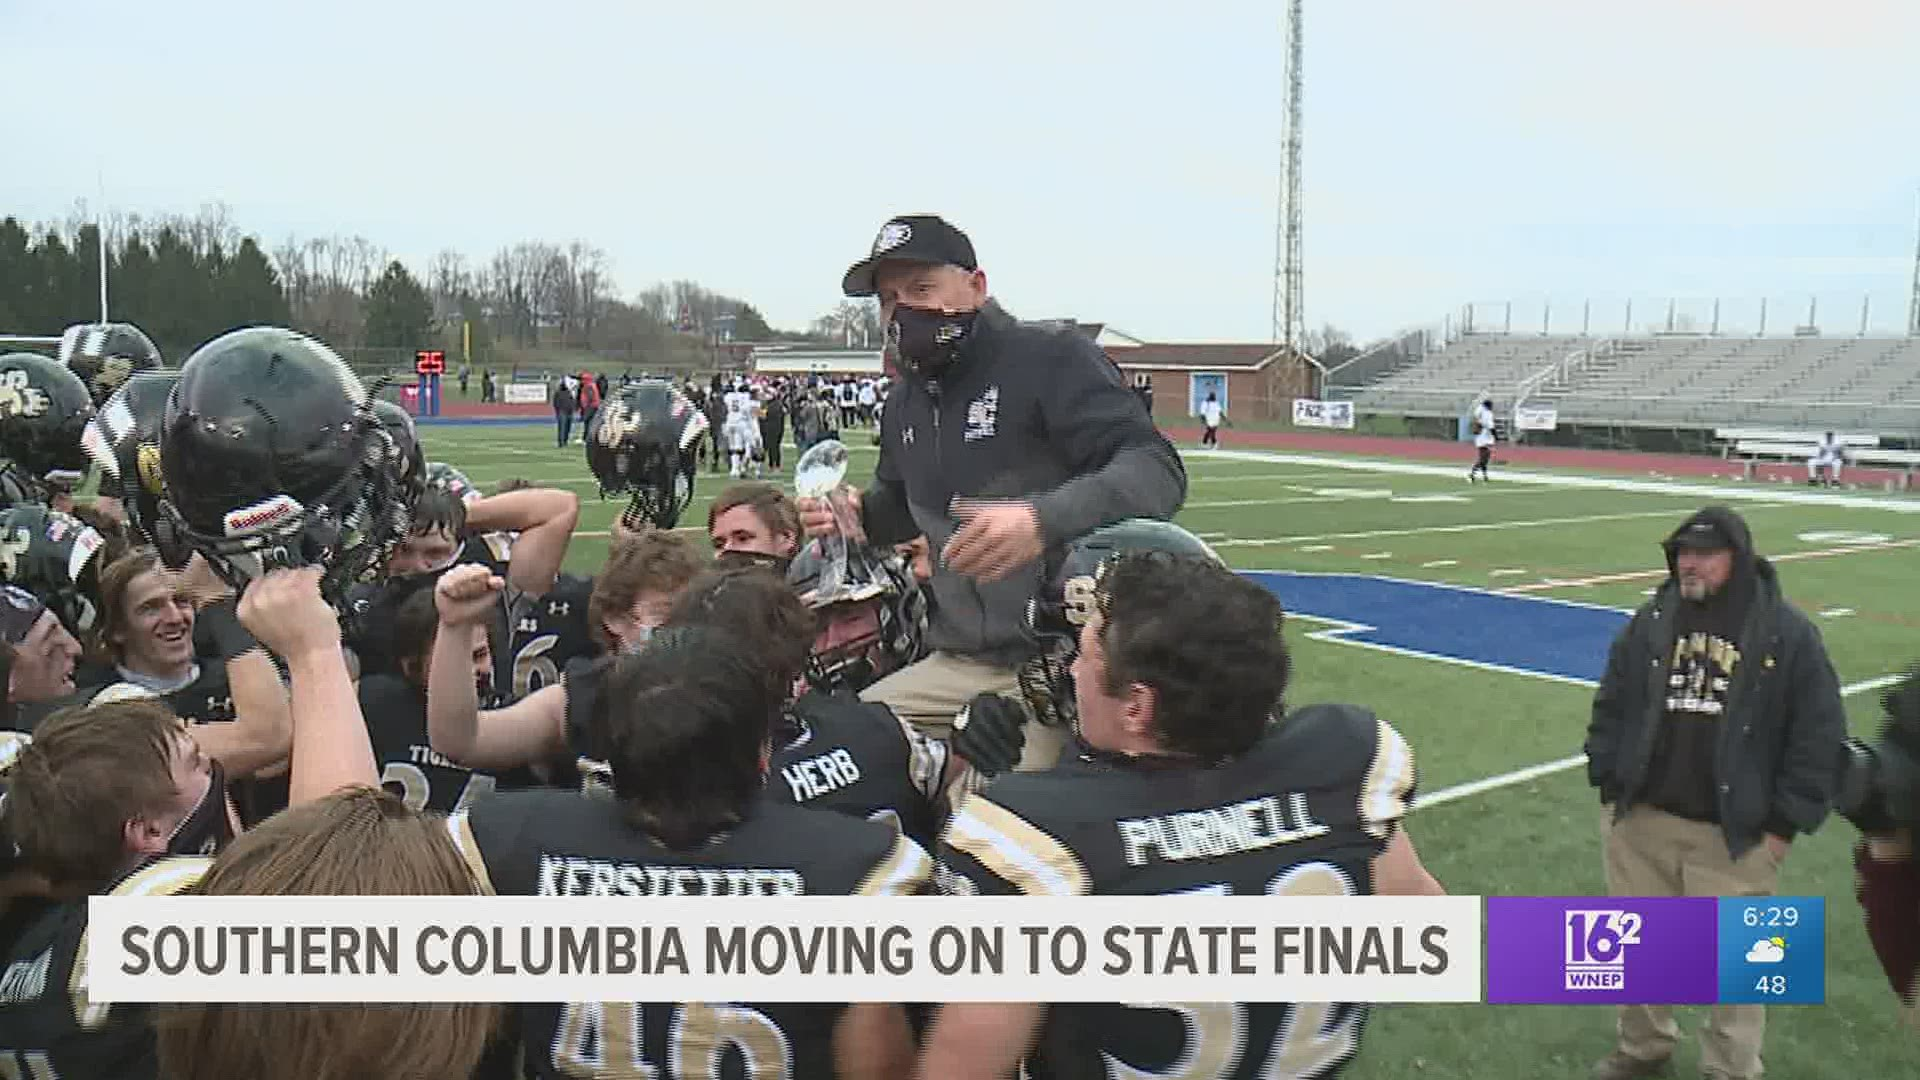 Southern Columbia Defeats Bishop Mcdevitt 42 14 And Heads To Hershey For The State Title Game Wnep Com